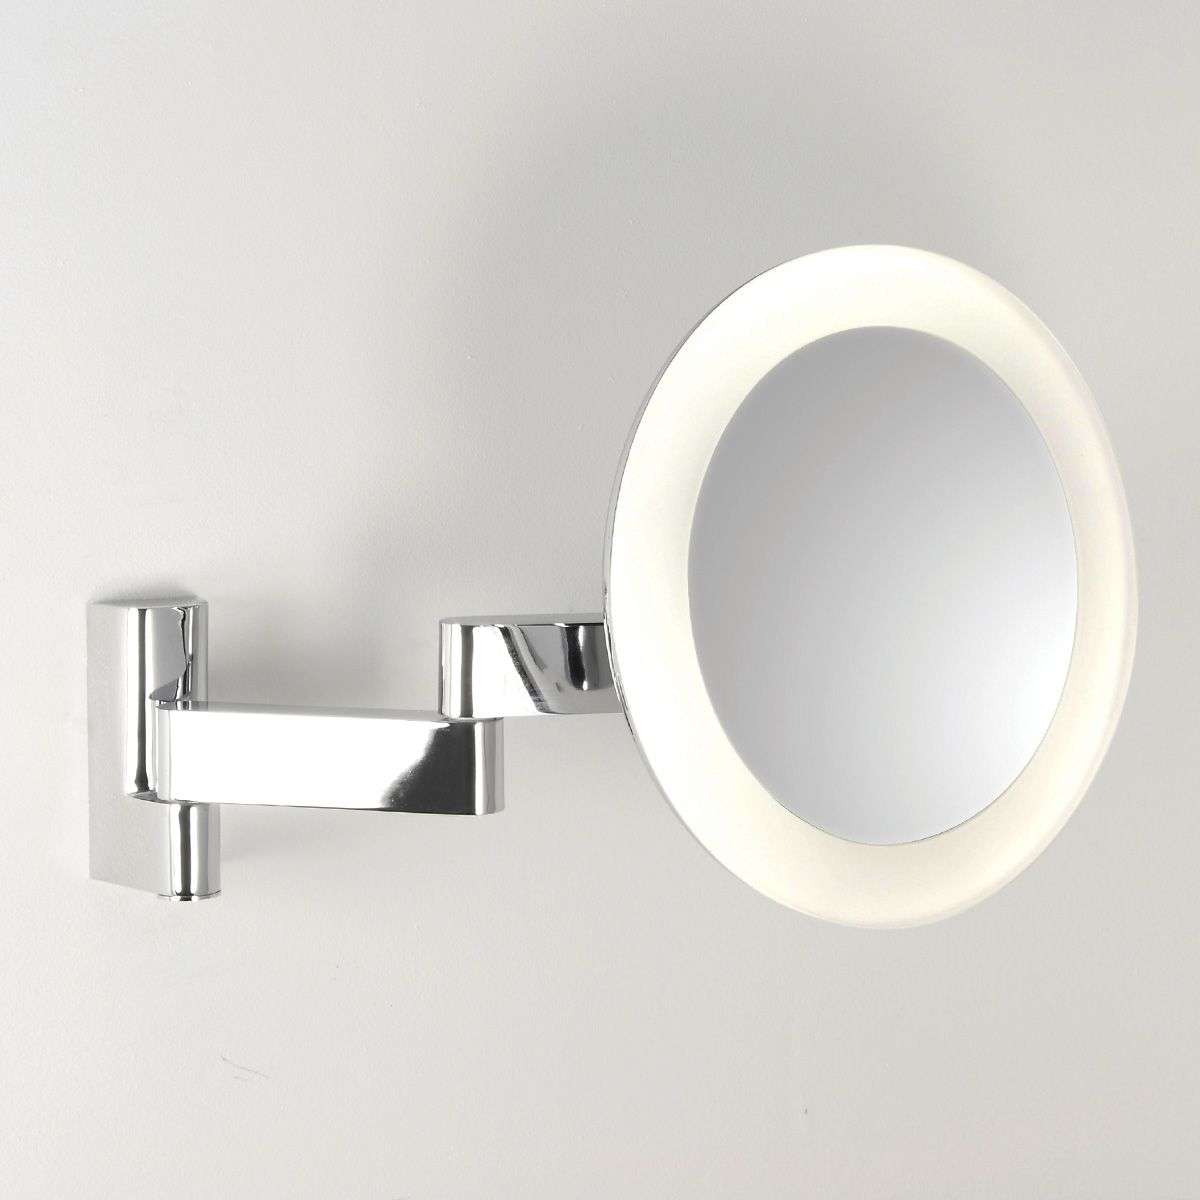 Niimi Round Cosmetic Mirror with LED Light-1020021-32